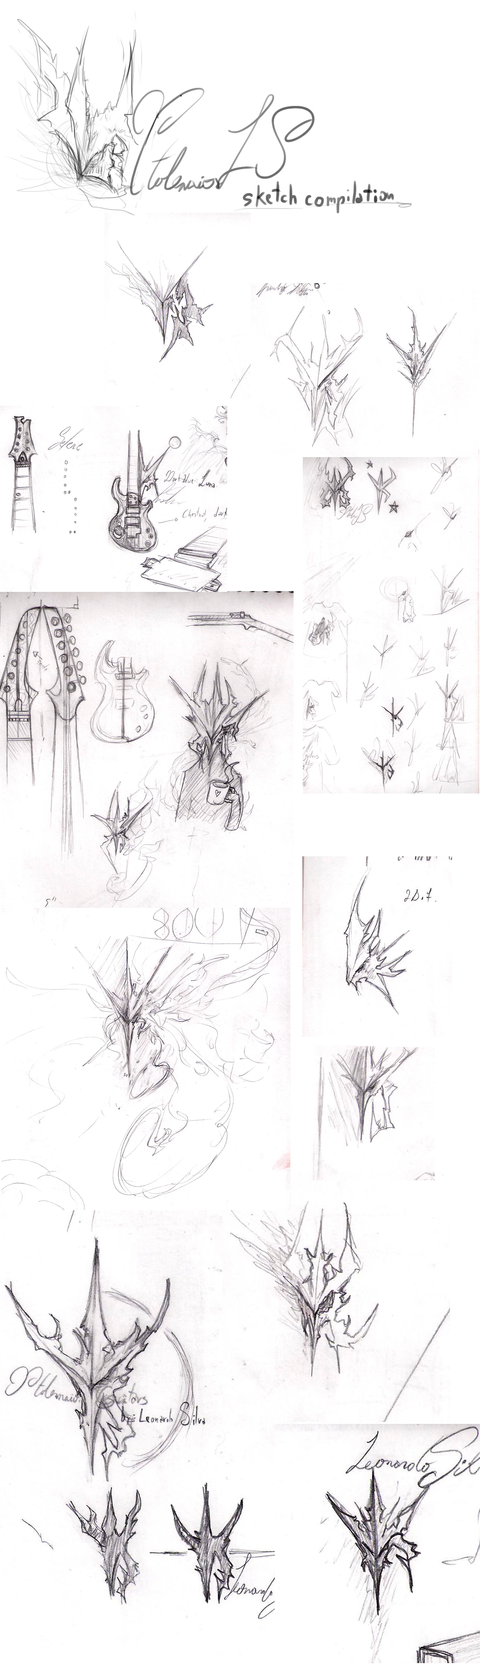 Ptolemaios sketch compilation by PtolemaiosLS